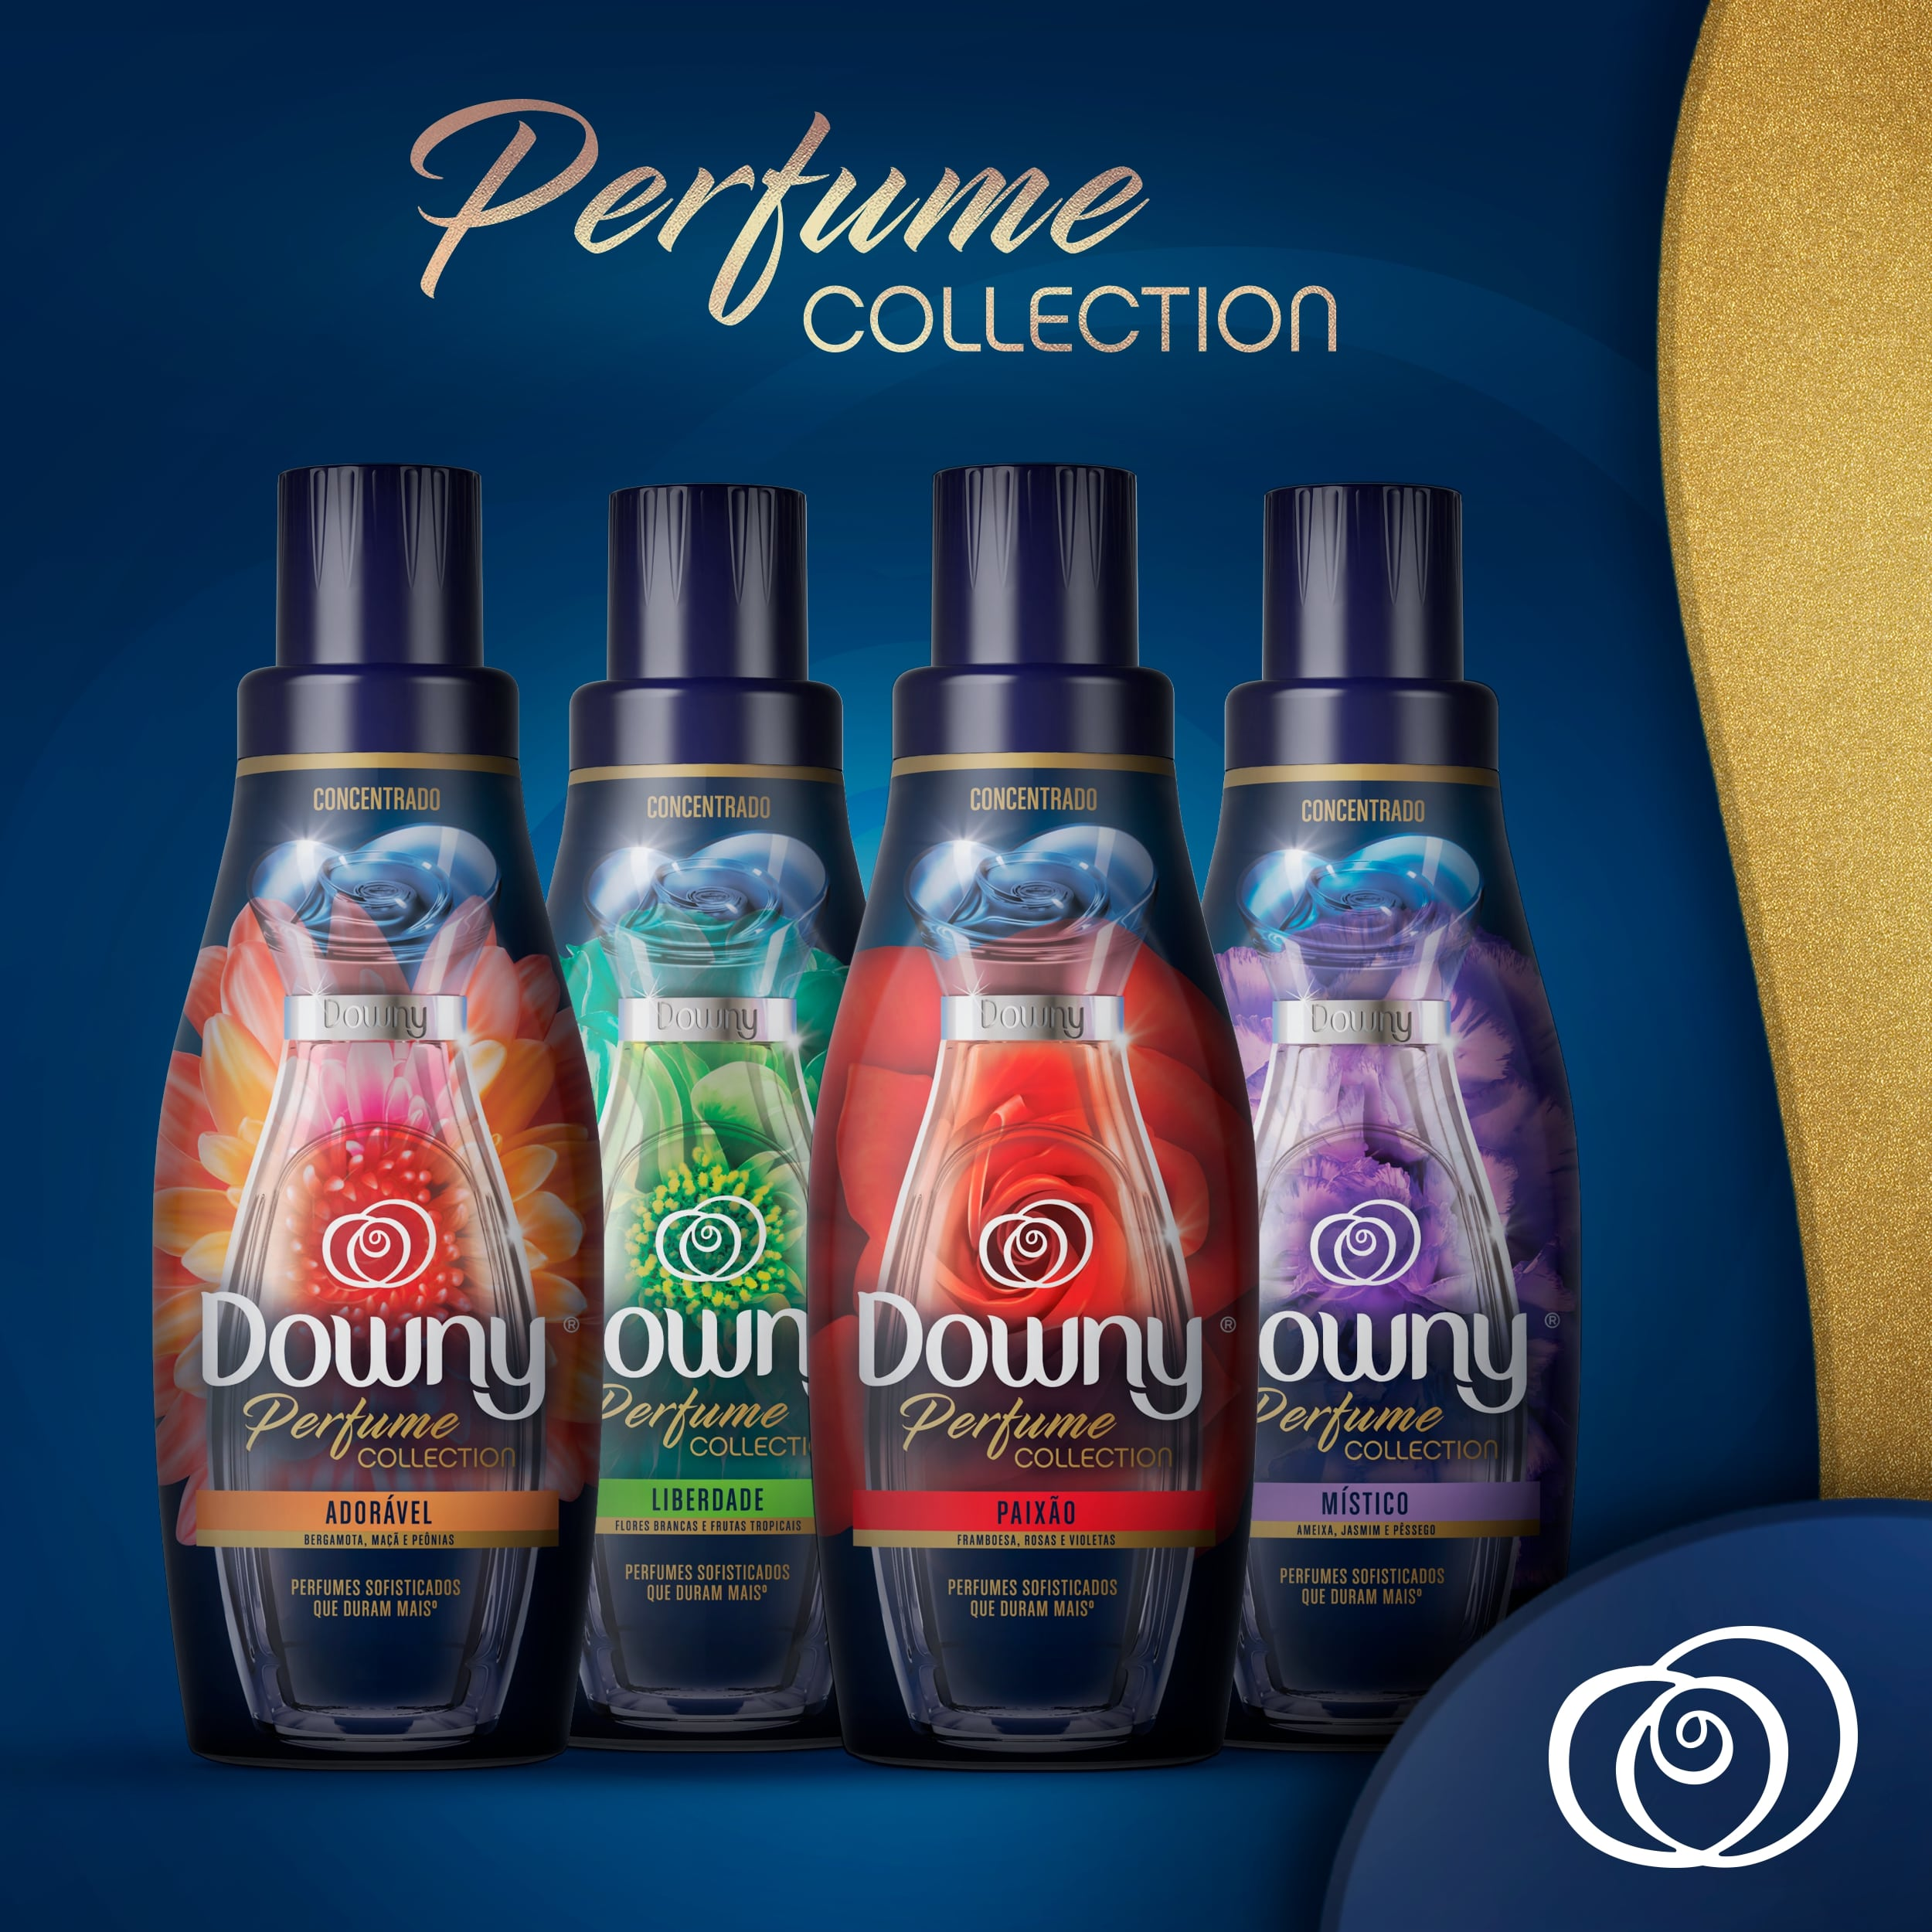 Amaciante Downy Perfume Collection Paixão Secondary 04